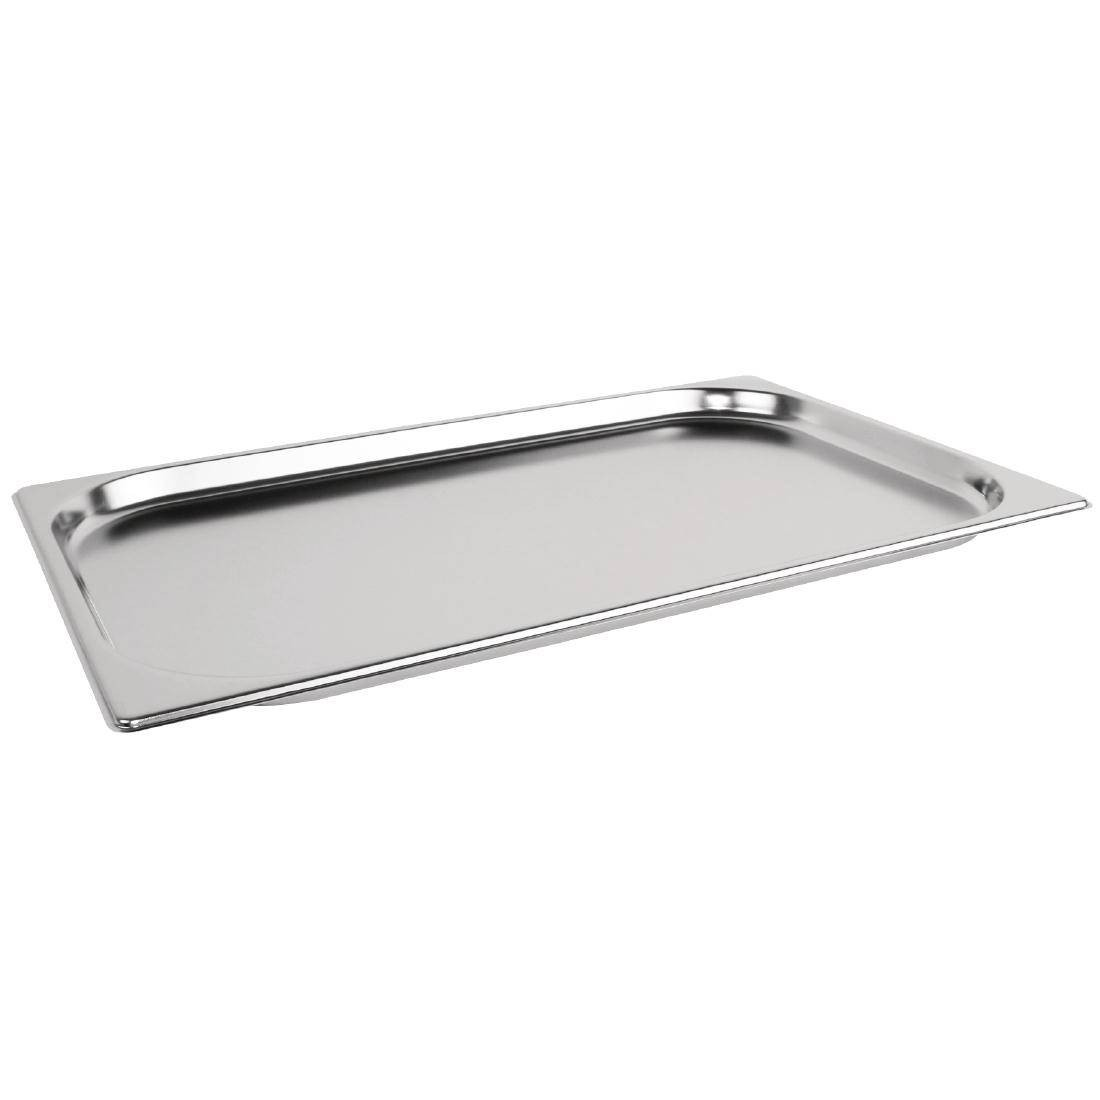 1/1 Stainless Steel Gastronorm Pan 20mm